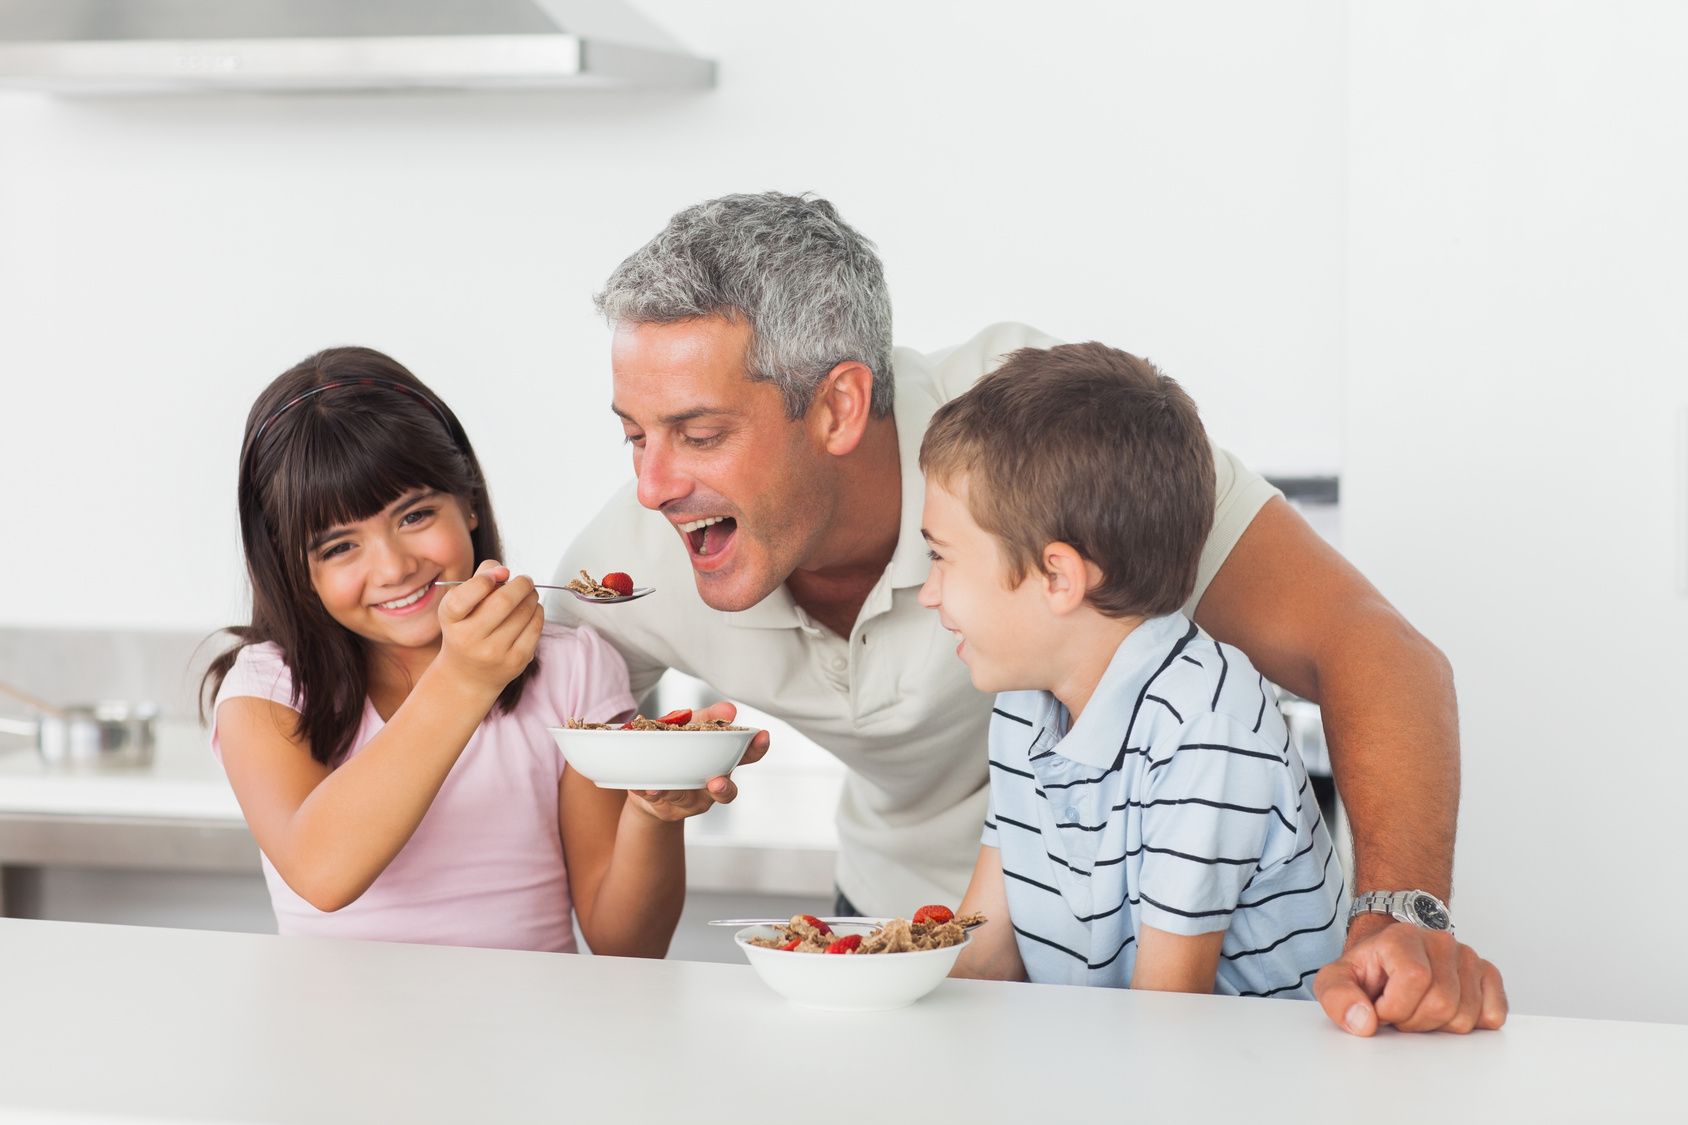 Little girl giving cereal to her father with brother smiling in kitchen